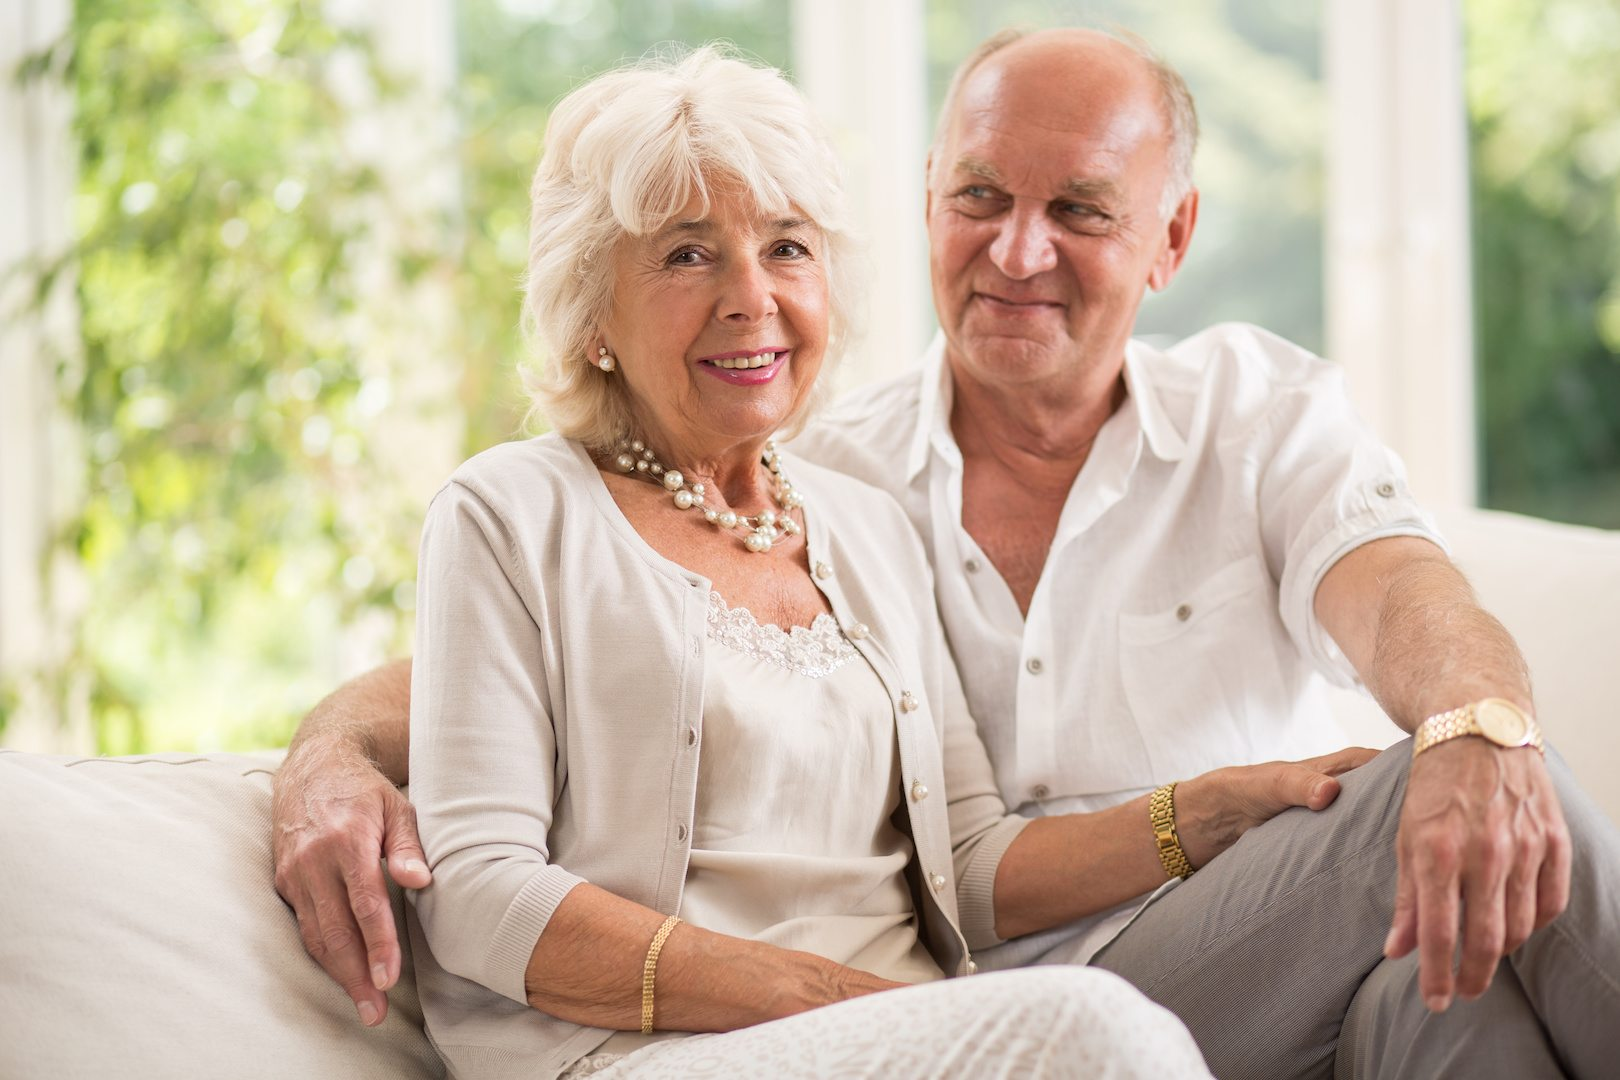 Older couple wisdom AdobeStock_88561678 copy